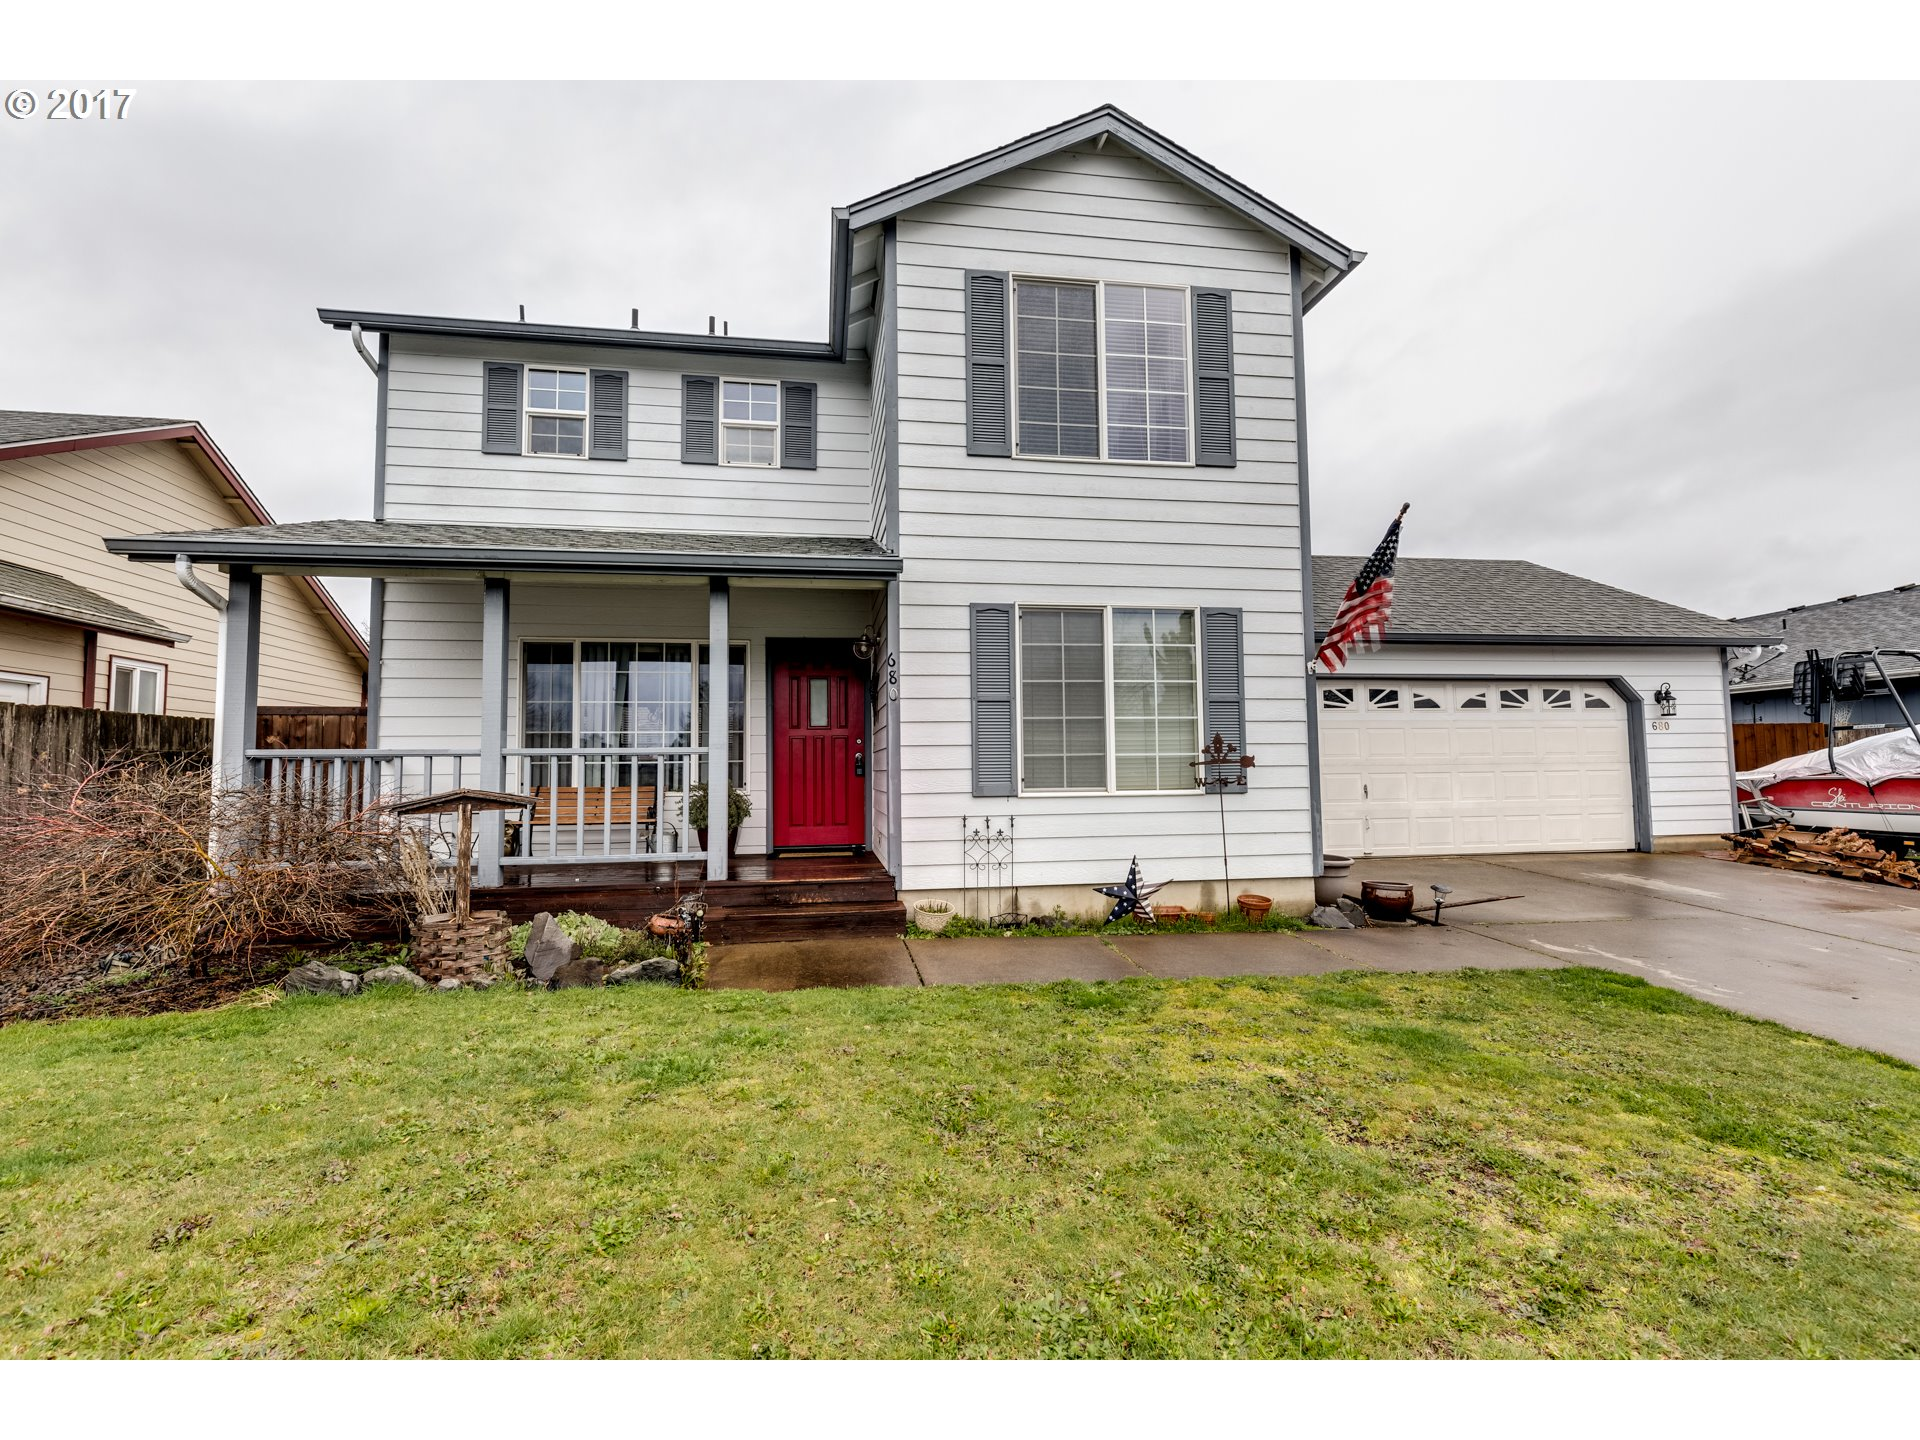 680 PINE CT, Creswell, OR 97426